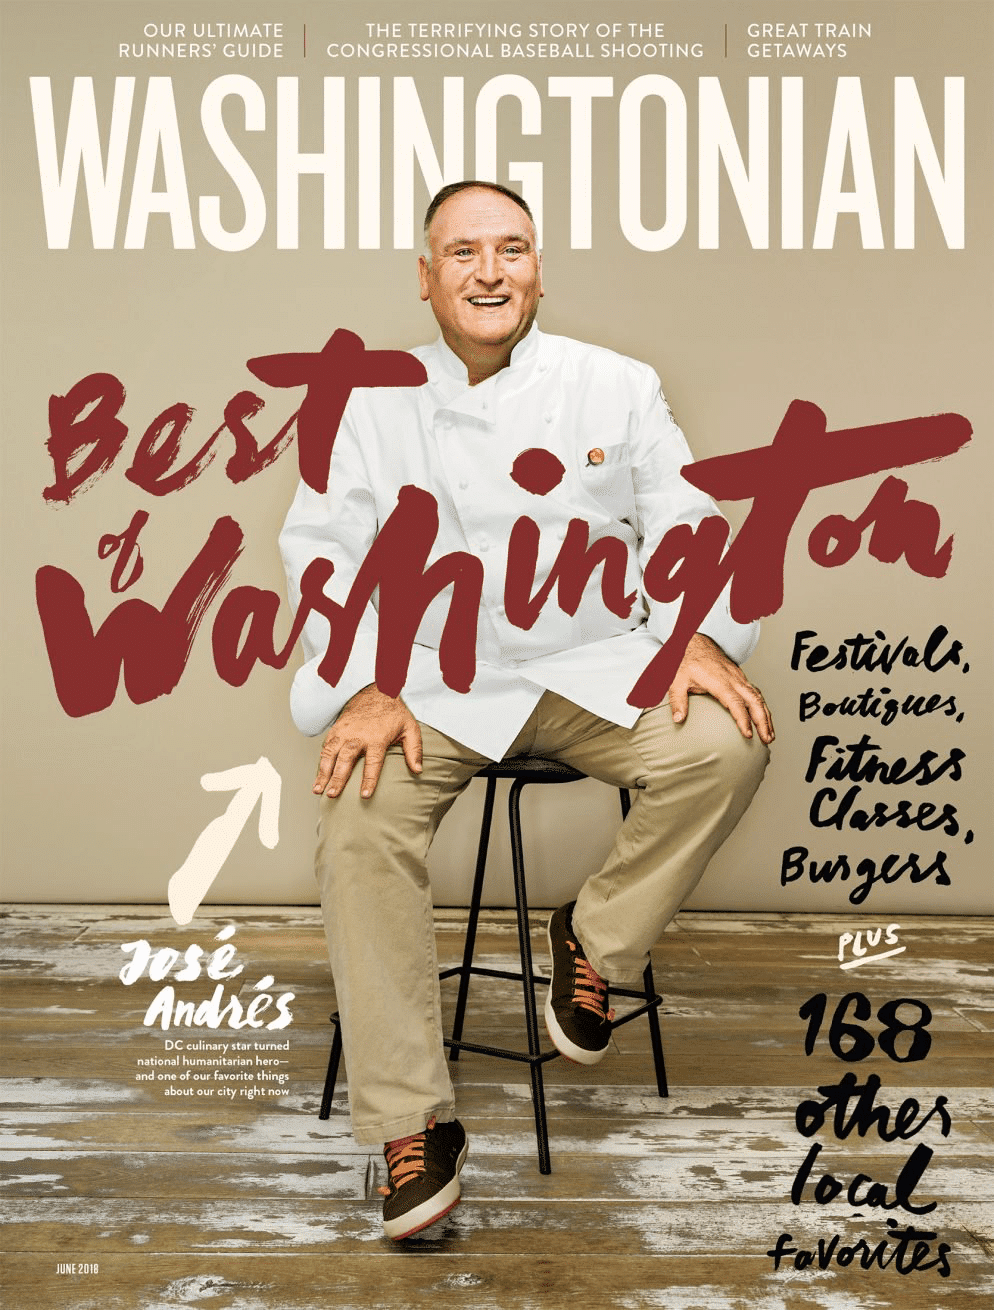 Dr. Larson named a Top Orthodontist by Washingtonian